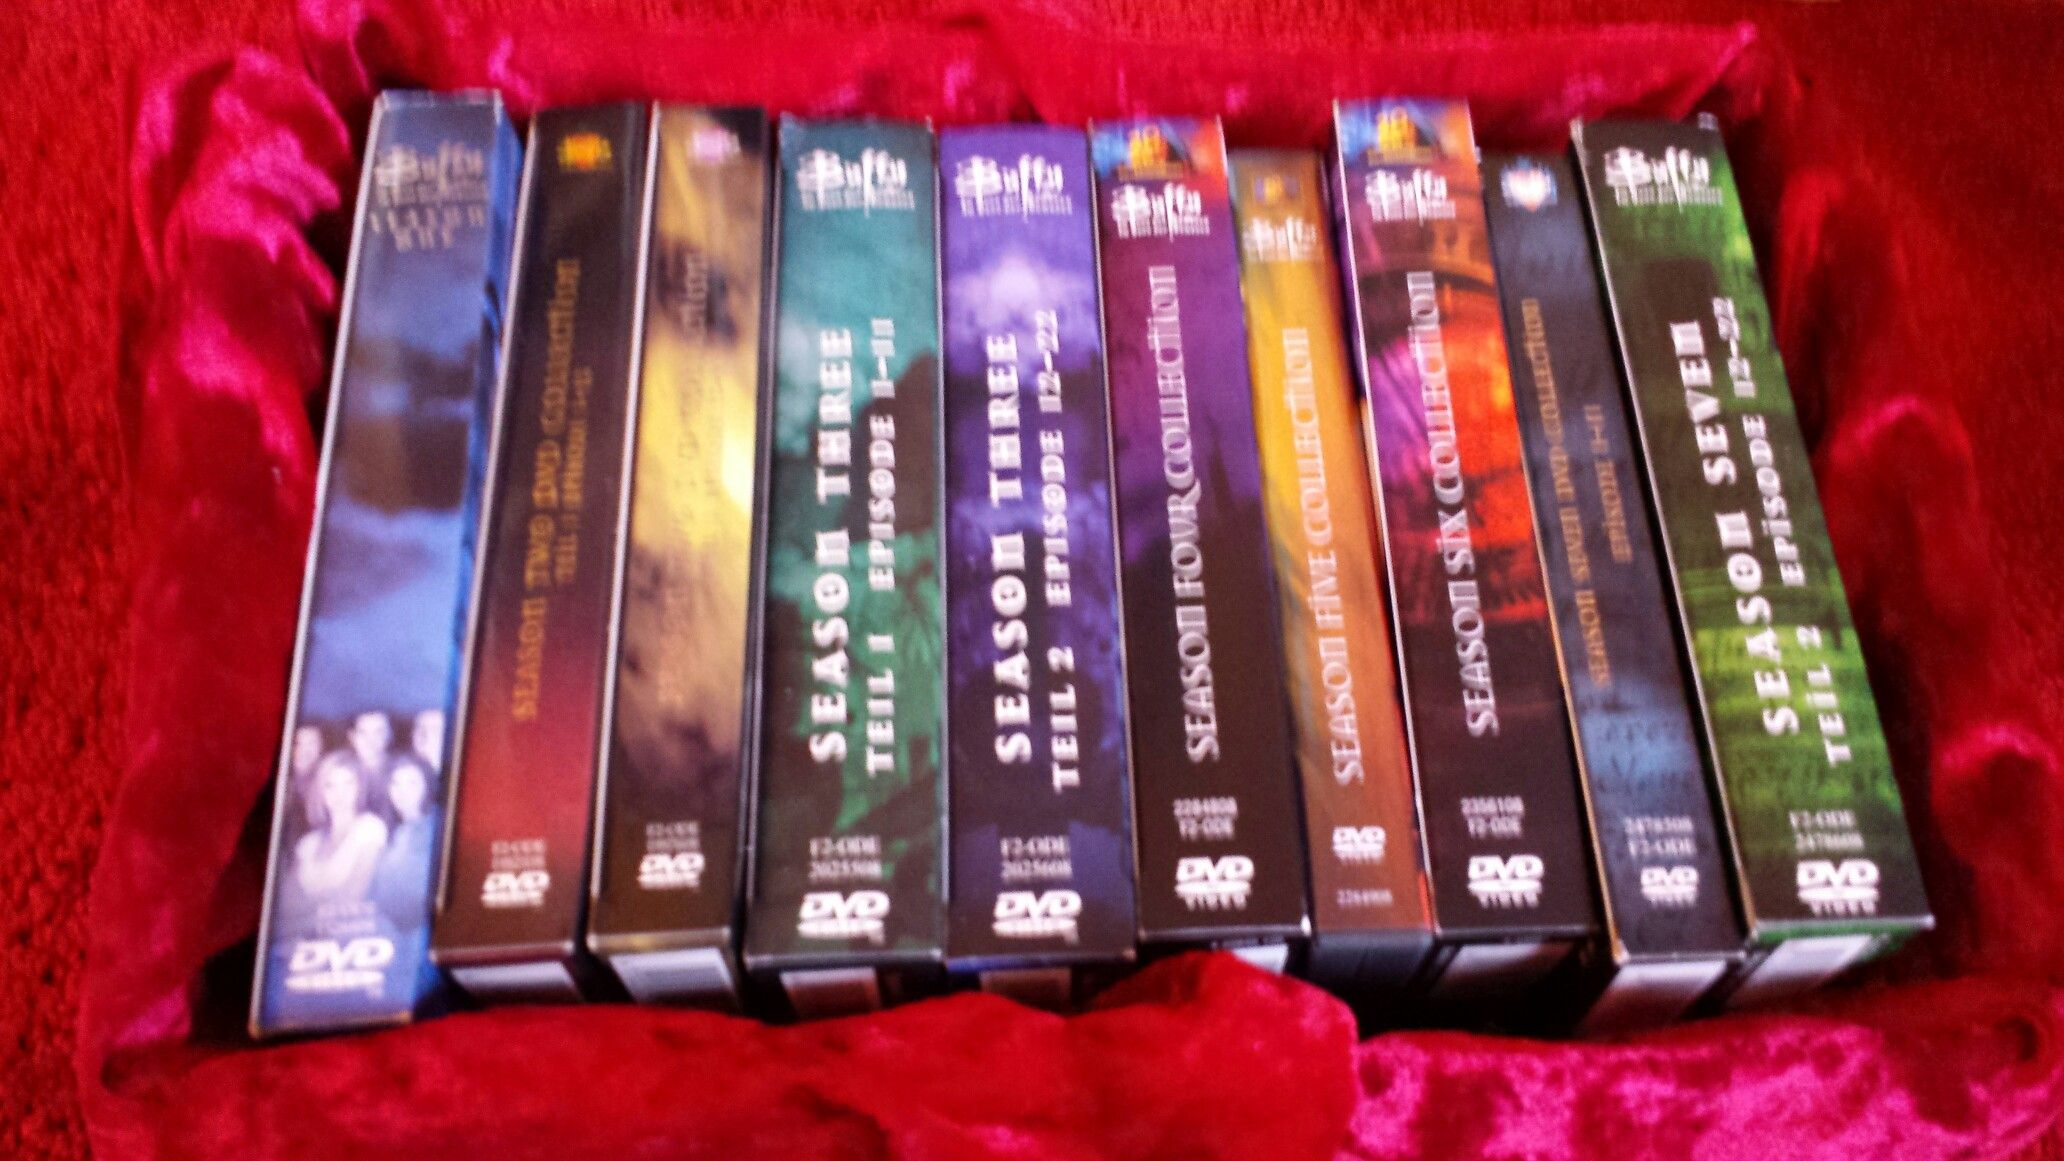 In the box: season 1-7 BTVS